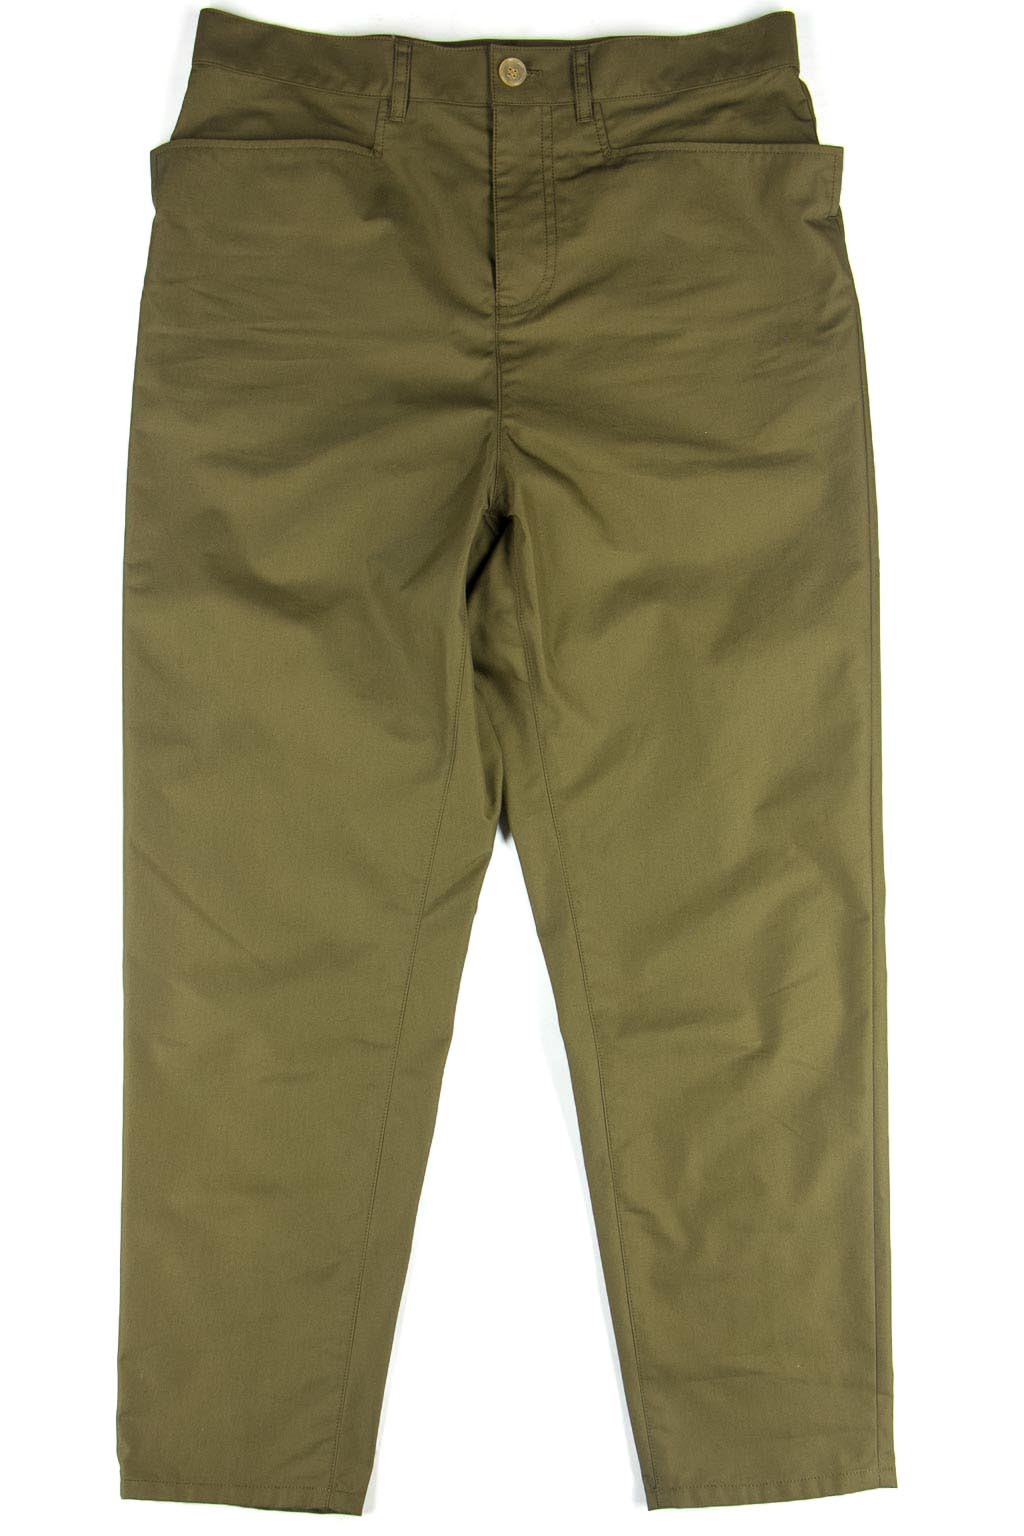 Digawel Slim High Waist Pants - Olive